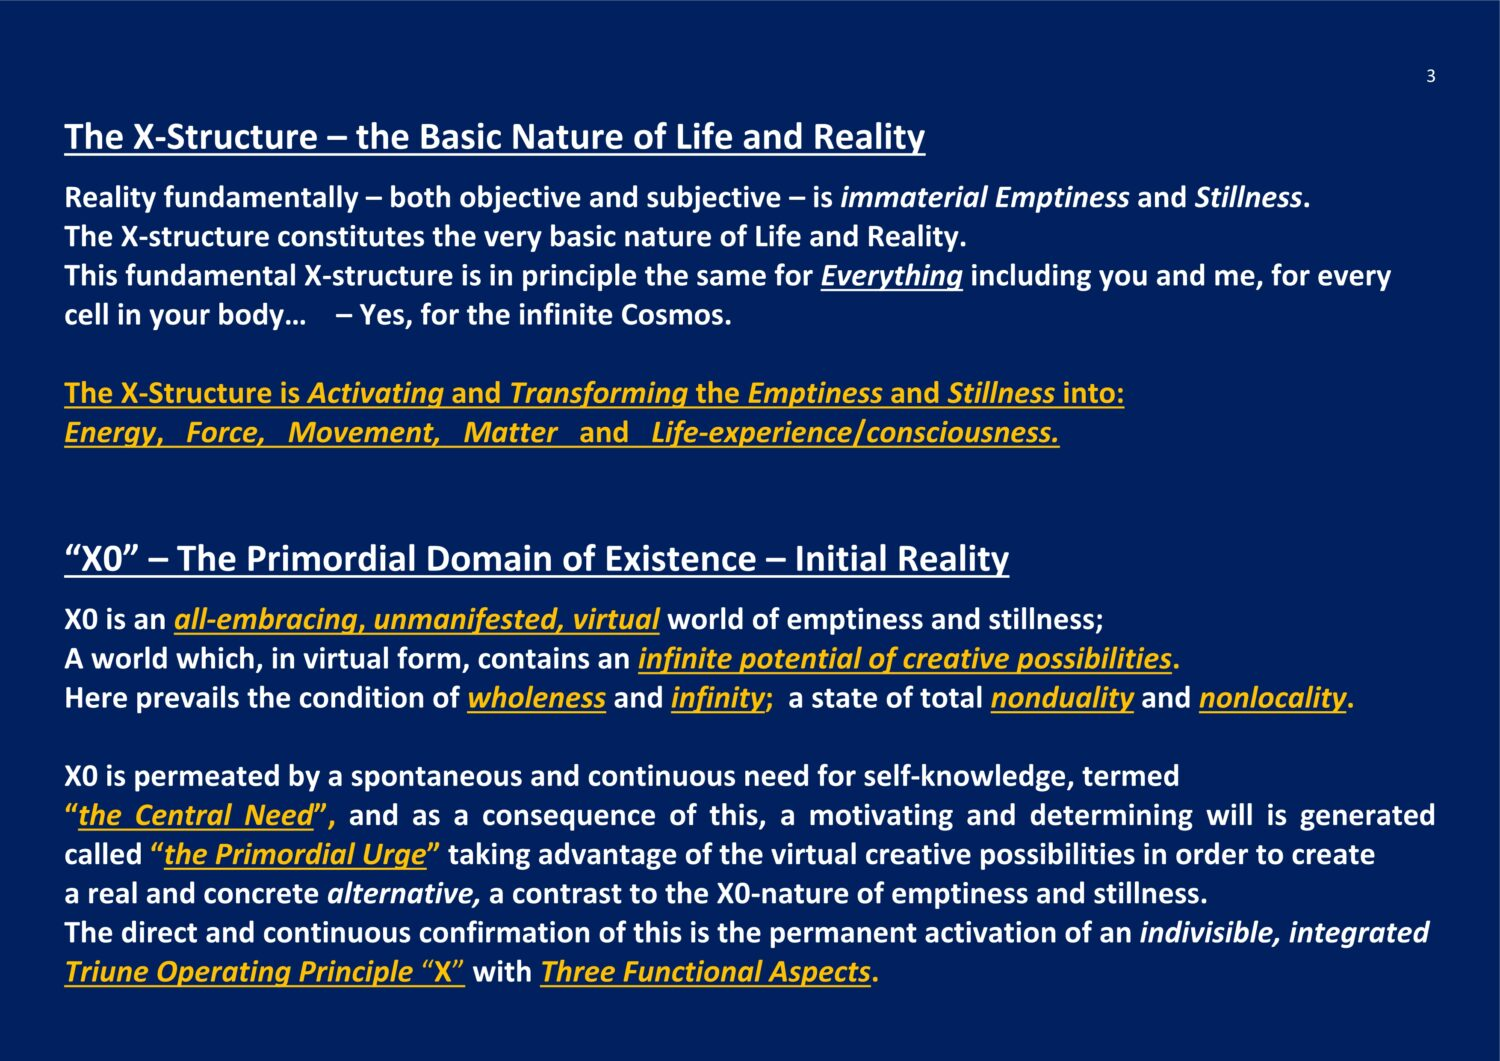 The X-Structure - Basic Nature of Life and Reality NCP X-AIONS NCP X-AIONS